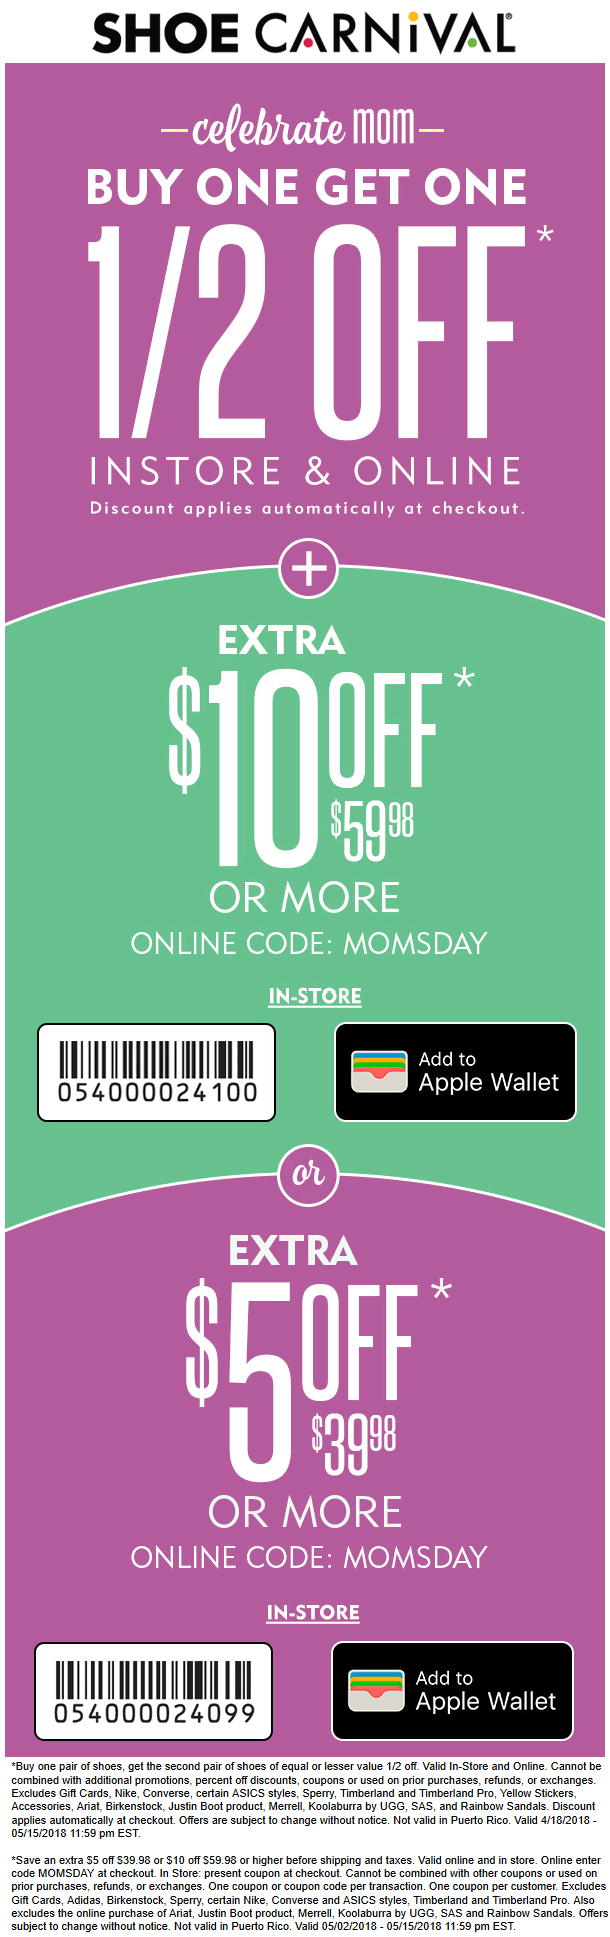 Shoe Carnival Coupon February 2019 $10 off $60 + 2nd pair 50% off today at Shoe Carnival, or online via promo code MOMSDAY